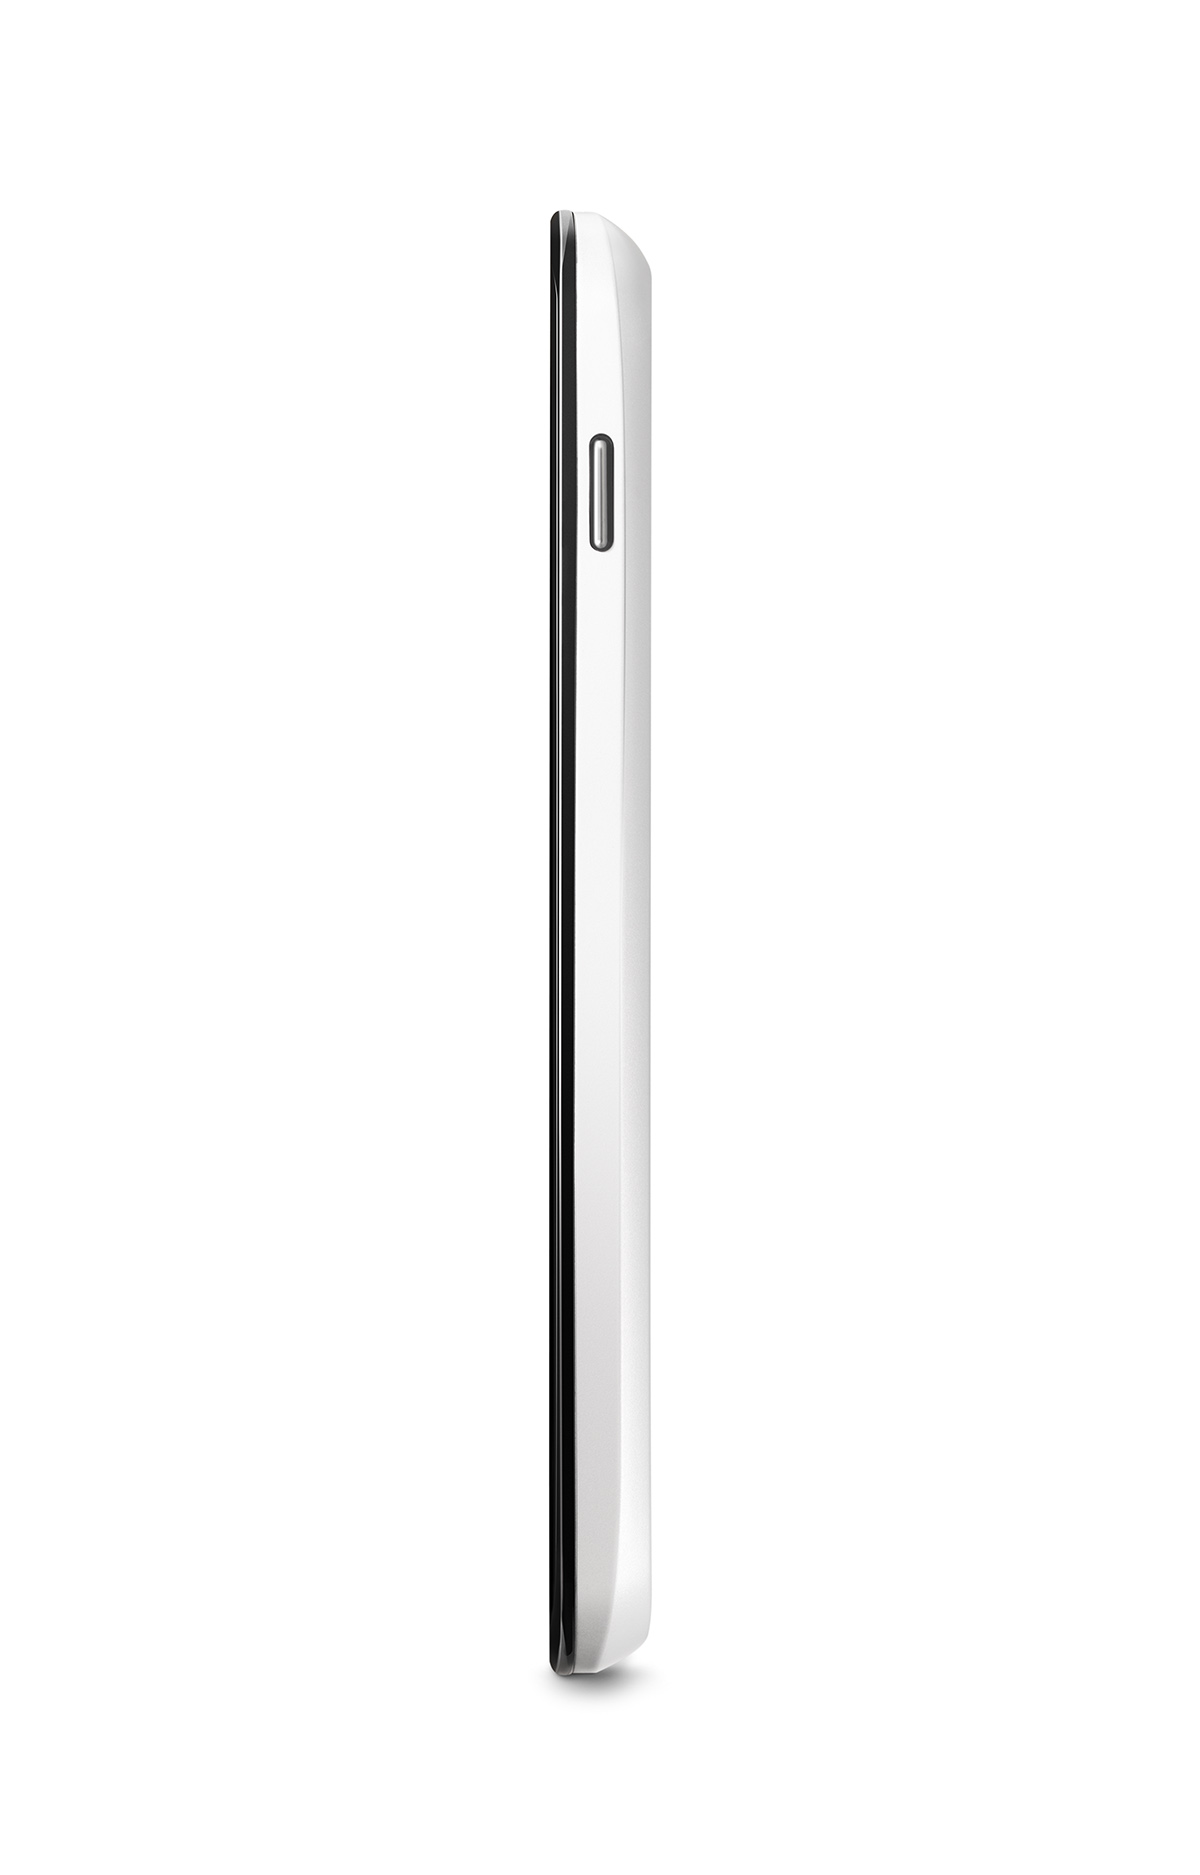 A vertical-side view of the Nexus 4 White